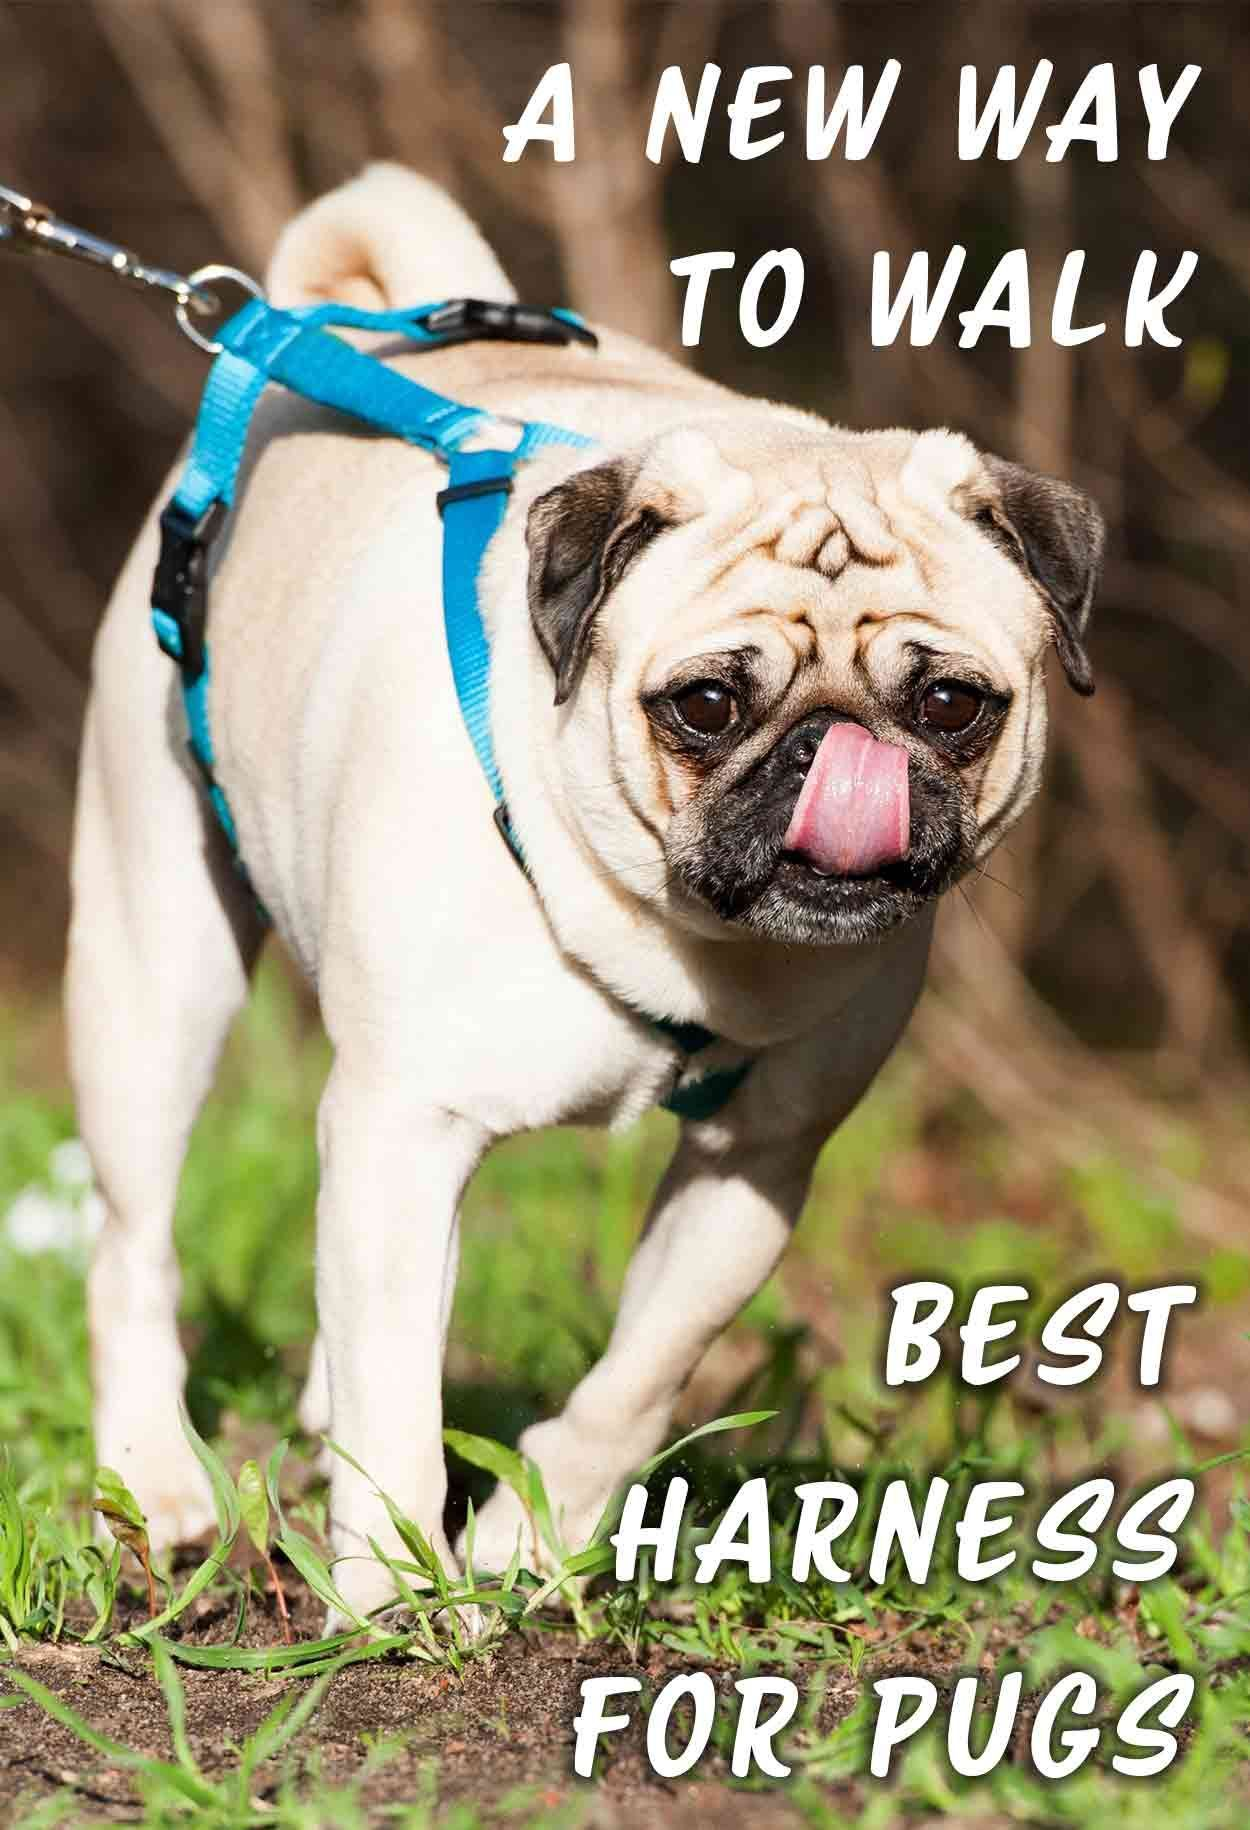 Best Harness For Pugs A New Way To Walk Dog Harness Reviews